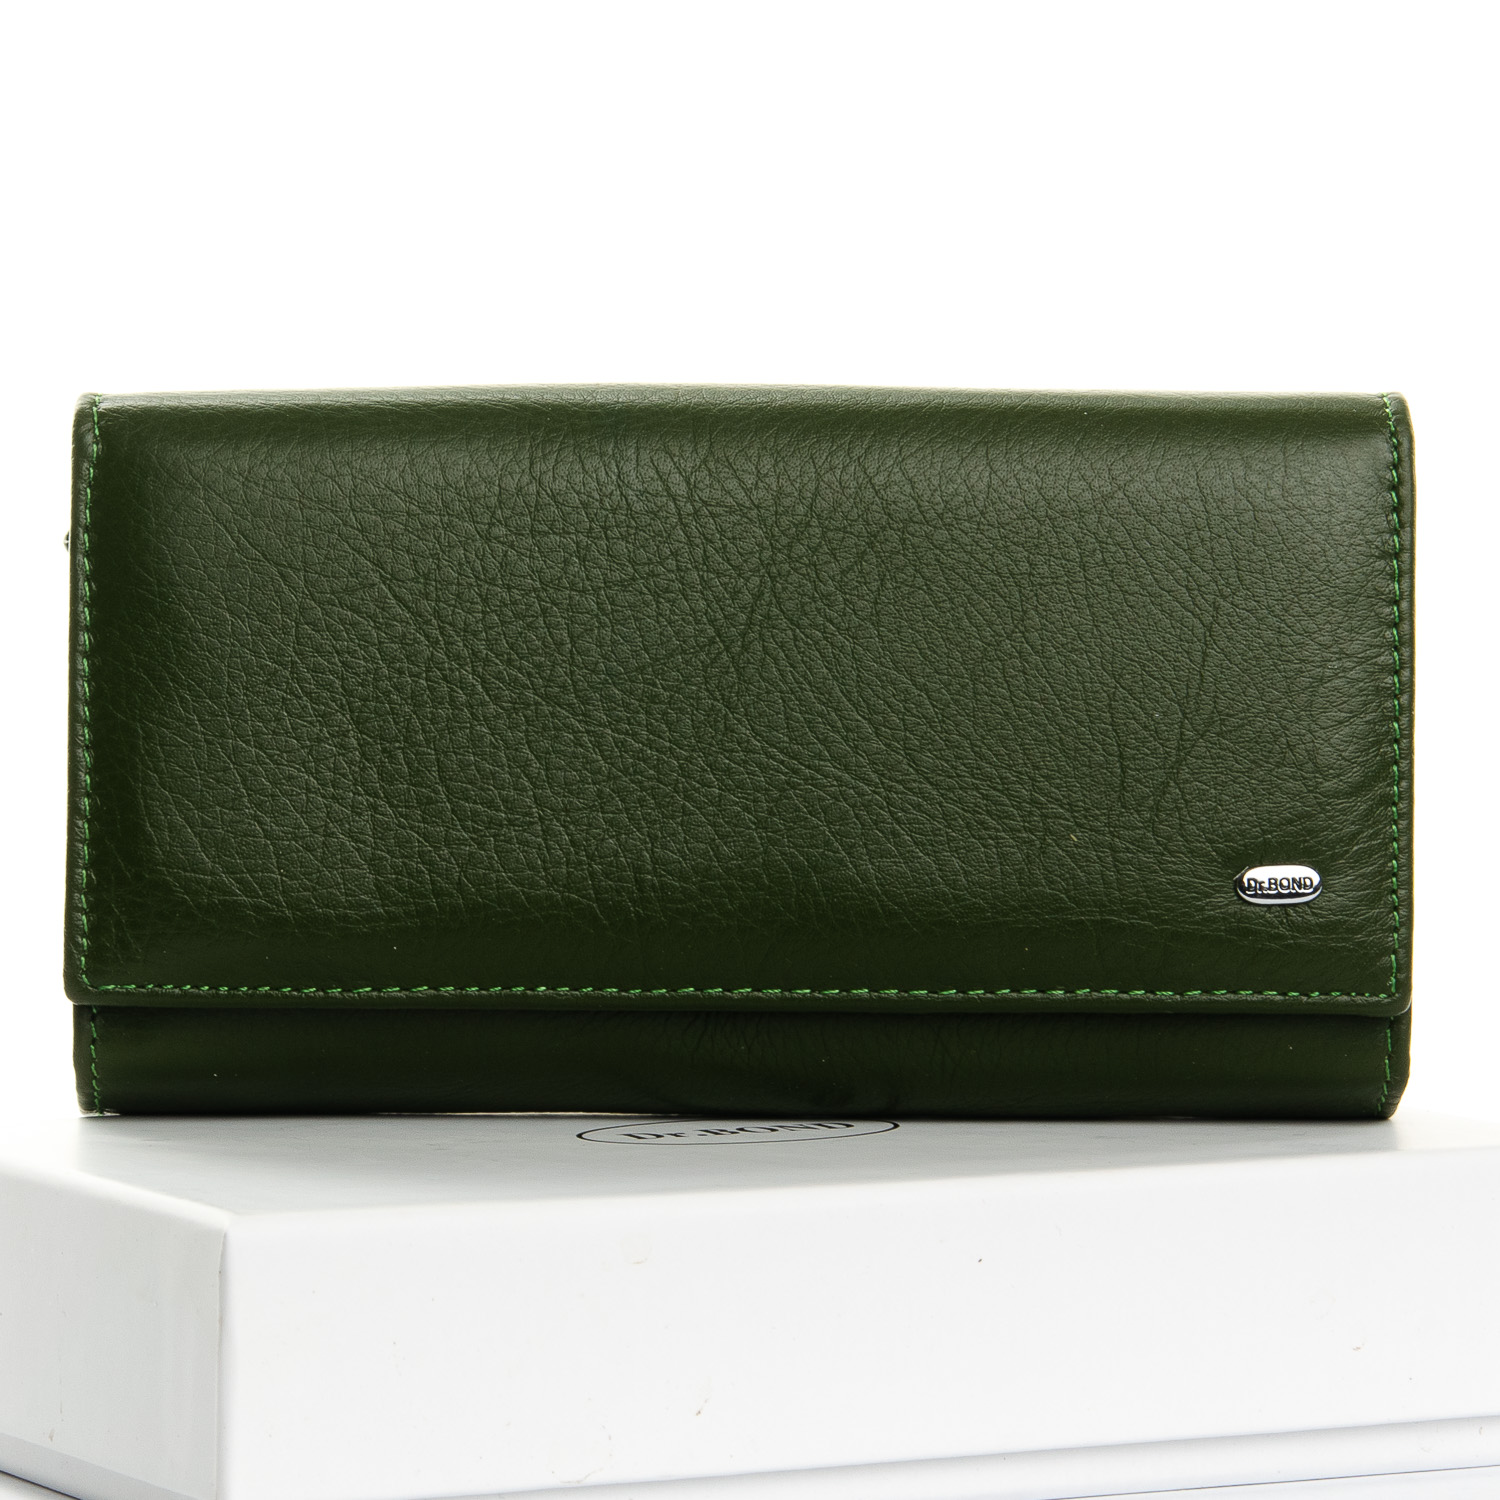 Кошелек Classic кожа DR. BOND W46 dark-green